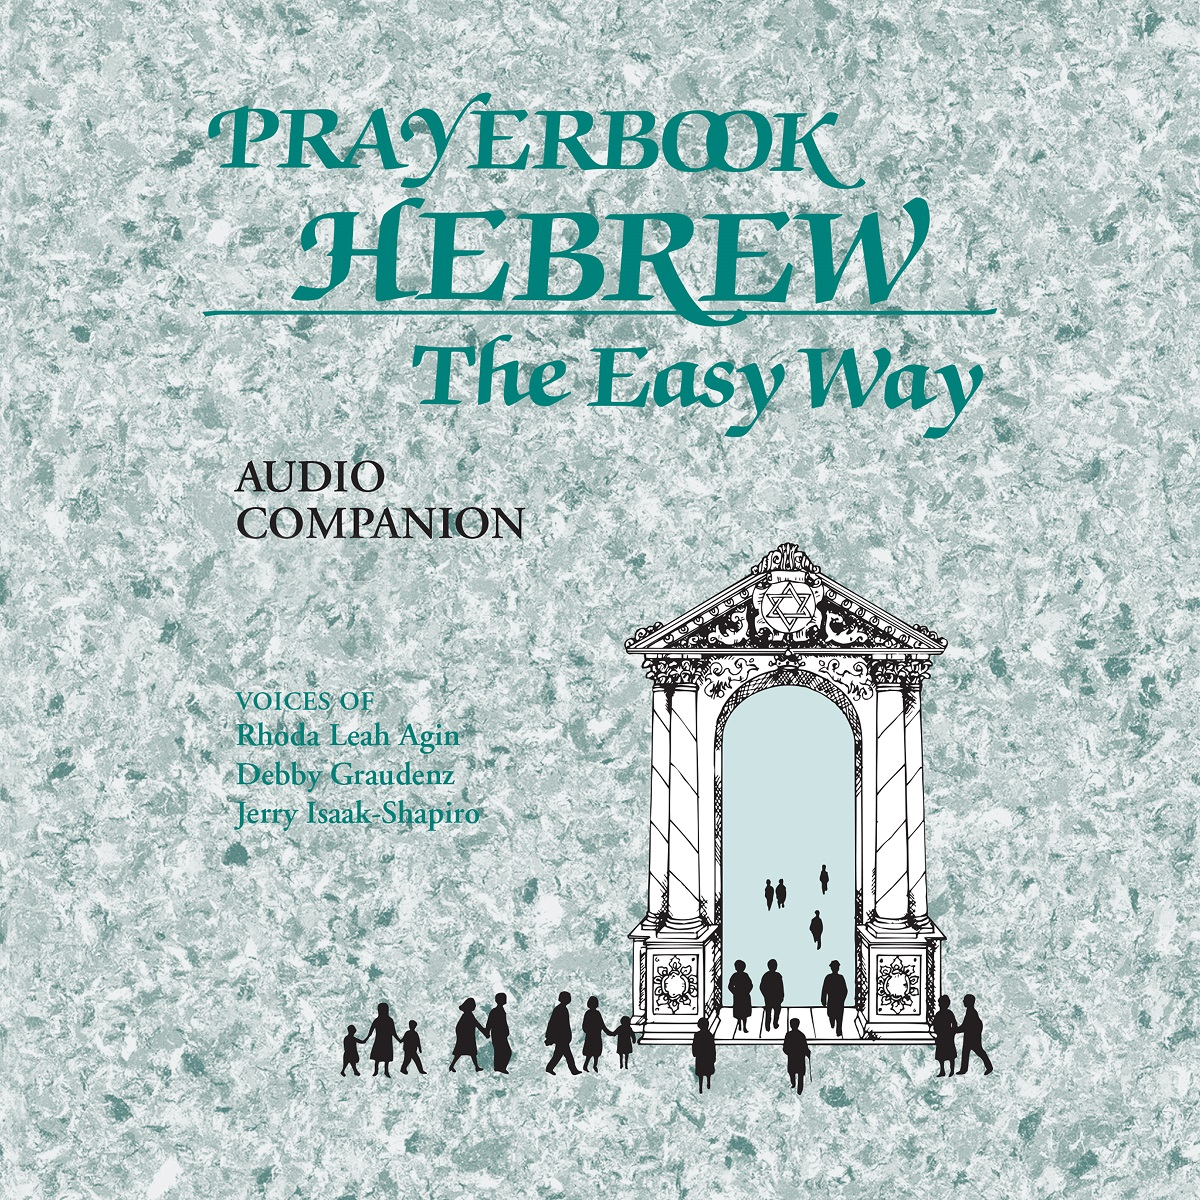 Prayerbook Hebrew the Easy Way Audio Companion (download)